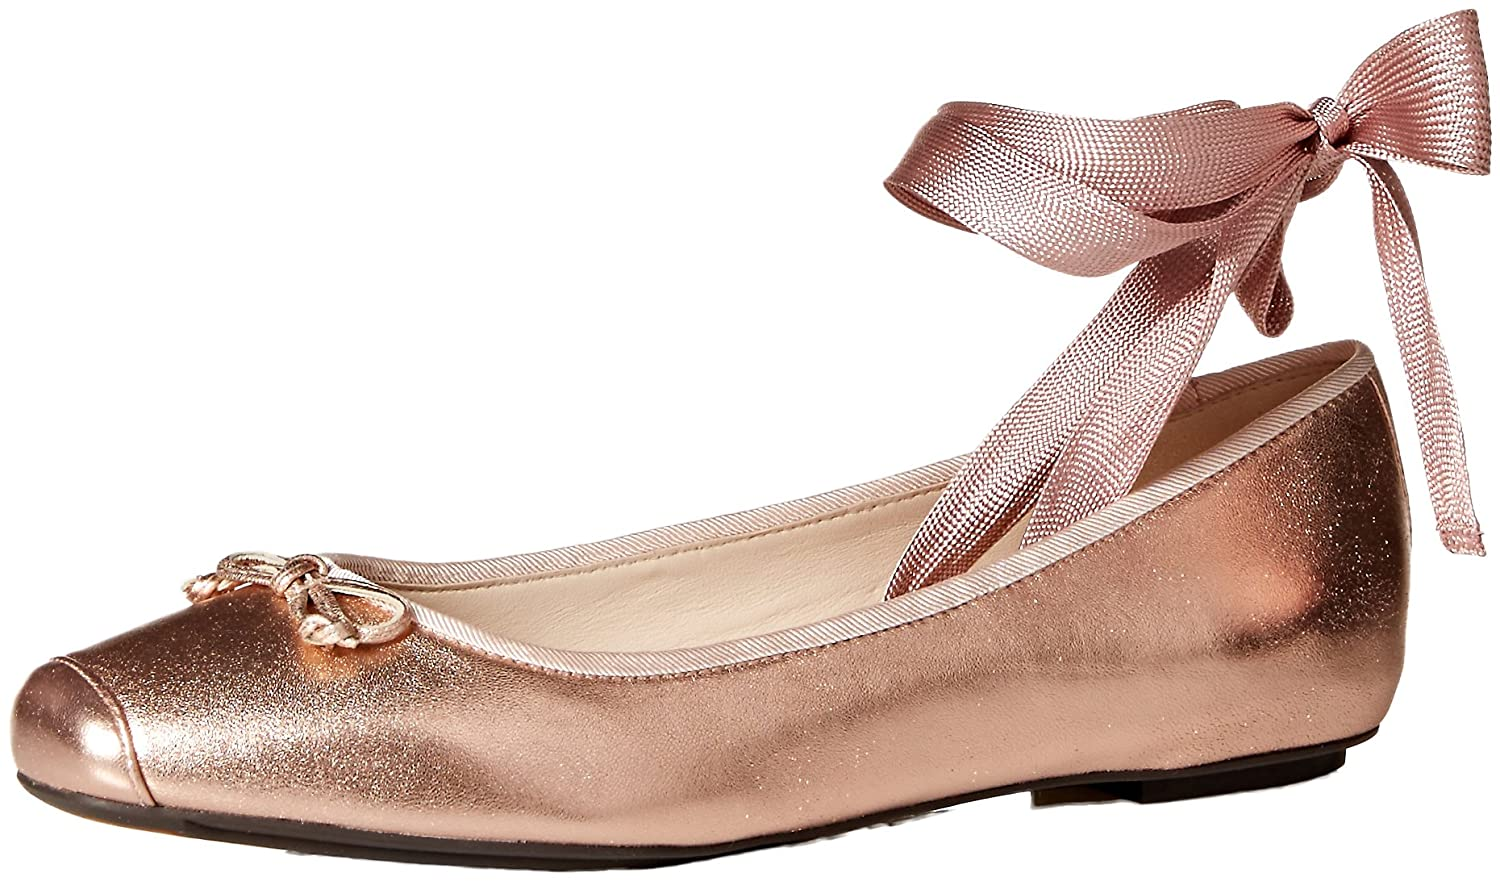 Cole Haan Women's Downtown Ballet Flat B073SQ6L8Z 7 B(M) US|Rose Gold